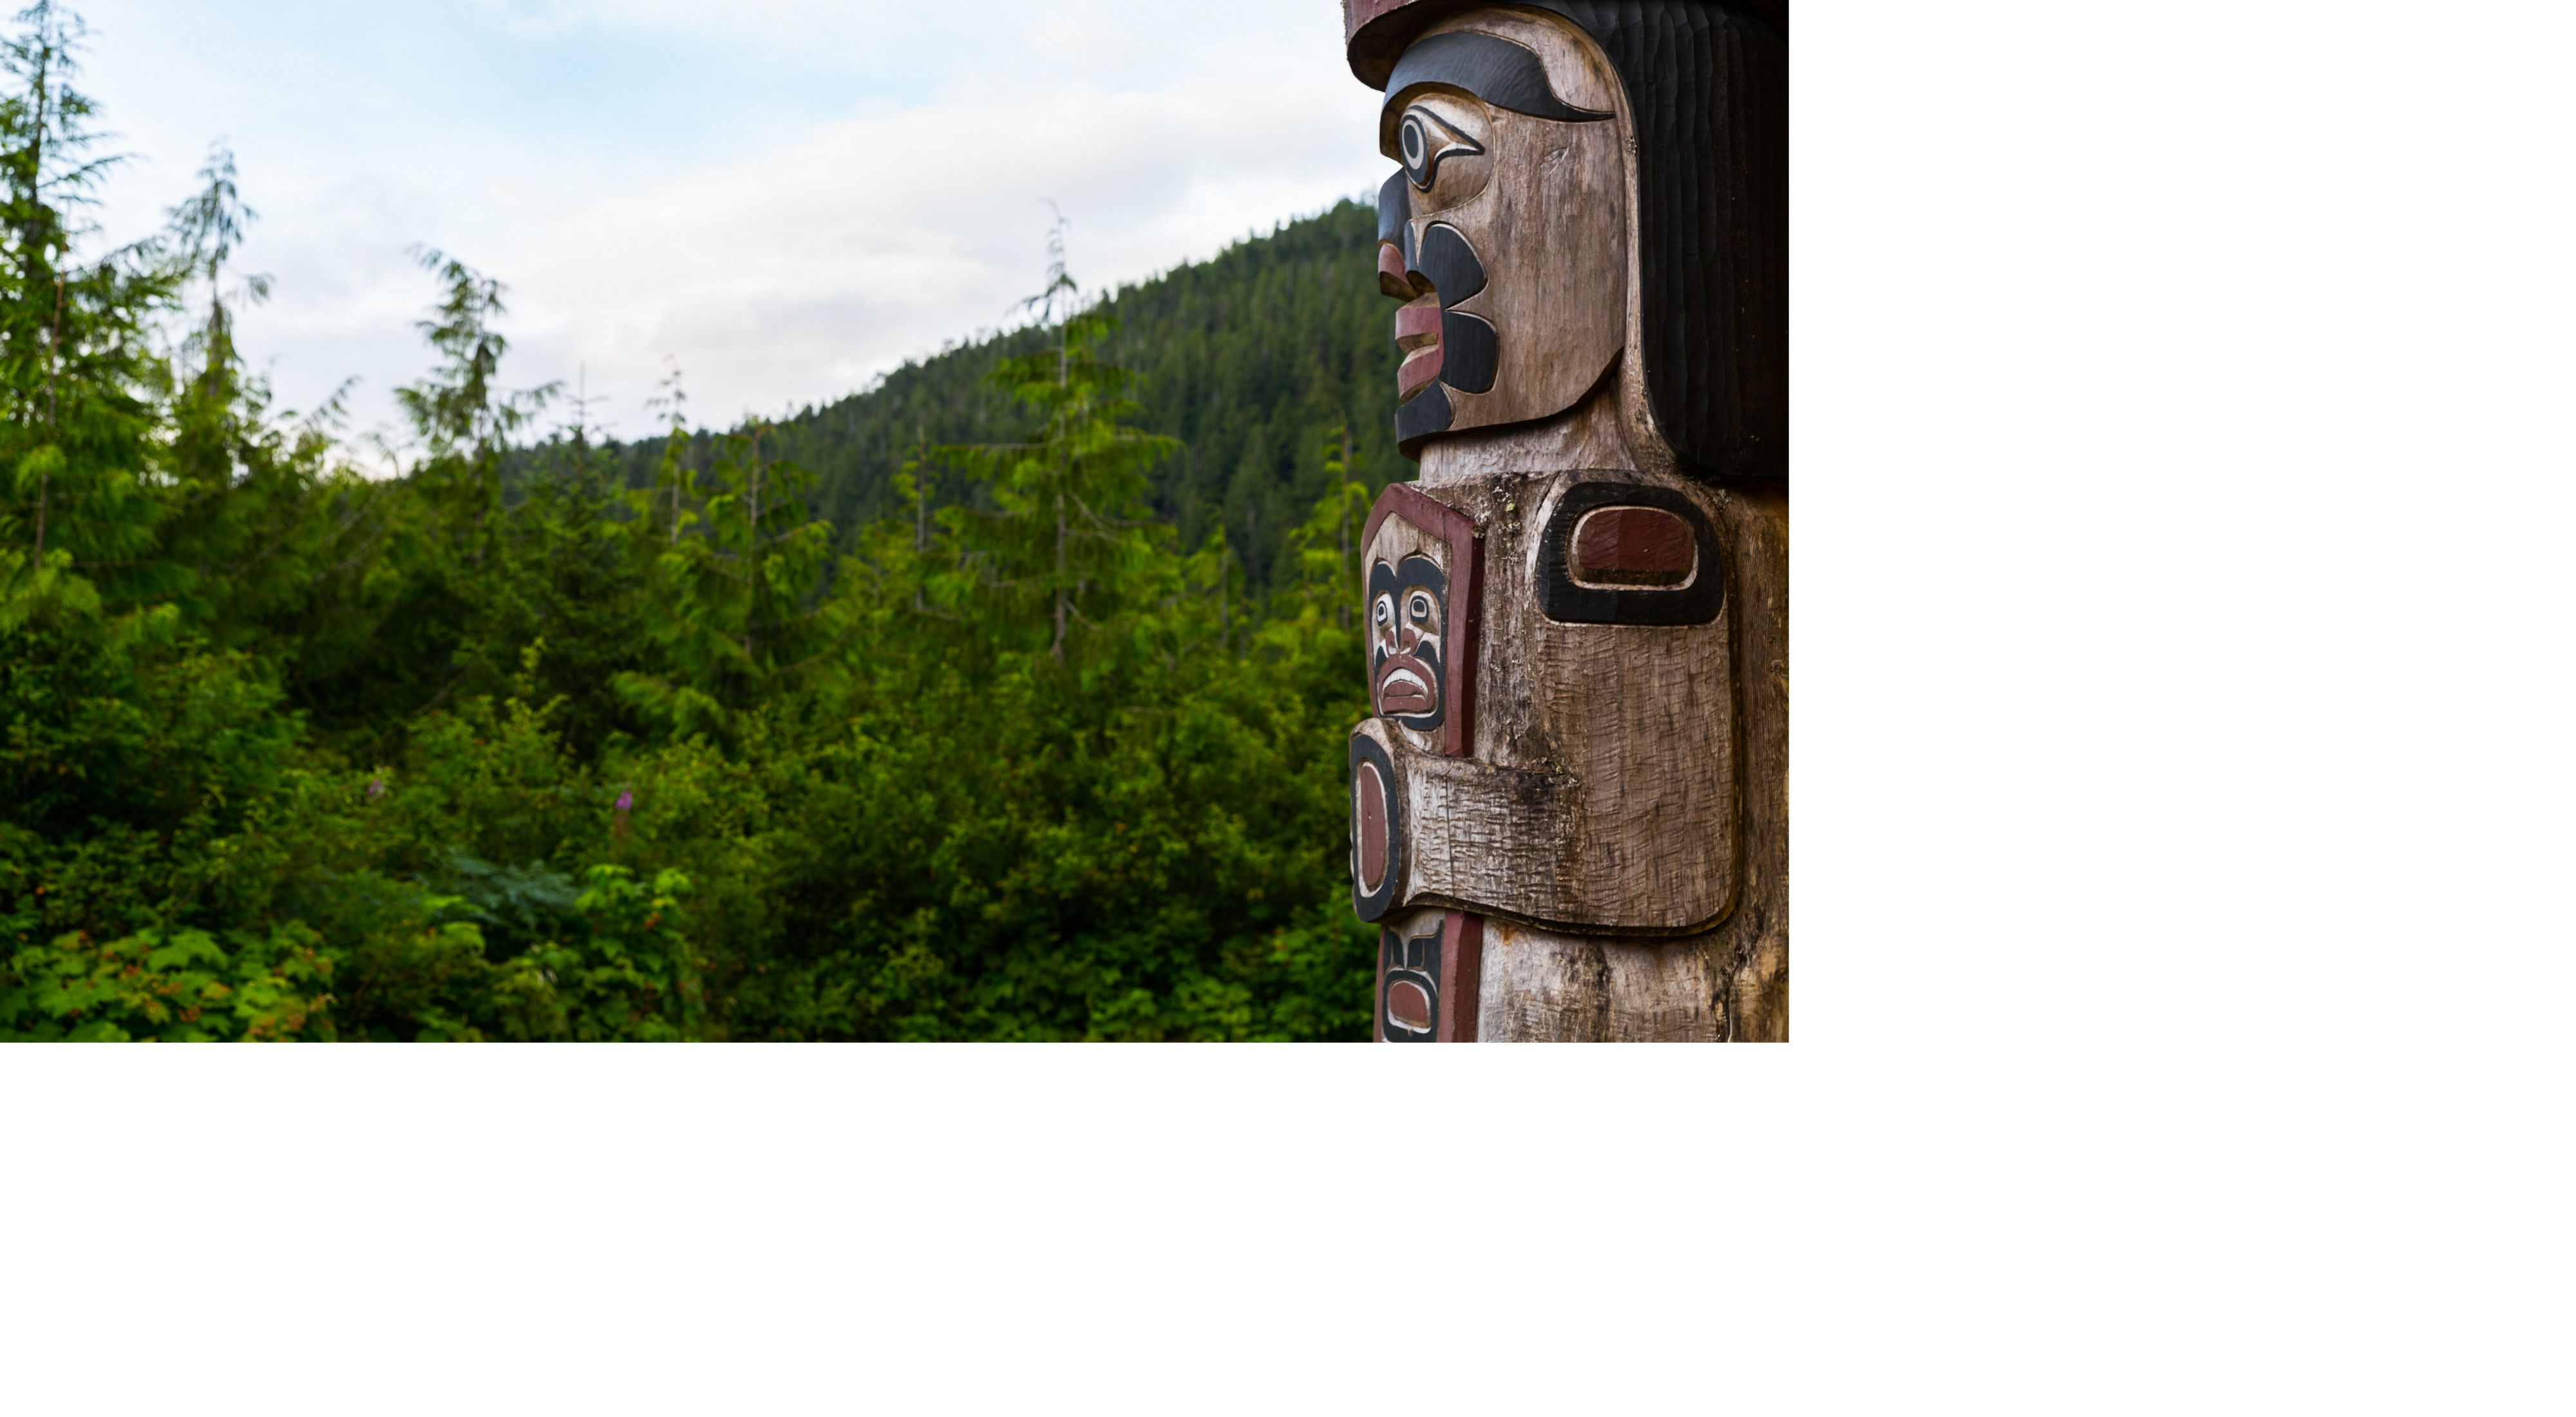 The Watchman Totem Pole guards the Big House and watches over the village of Klemtu from in front of the Kitasoo/Xai'xais Big House in Klemtu, British Columbia